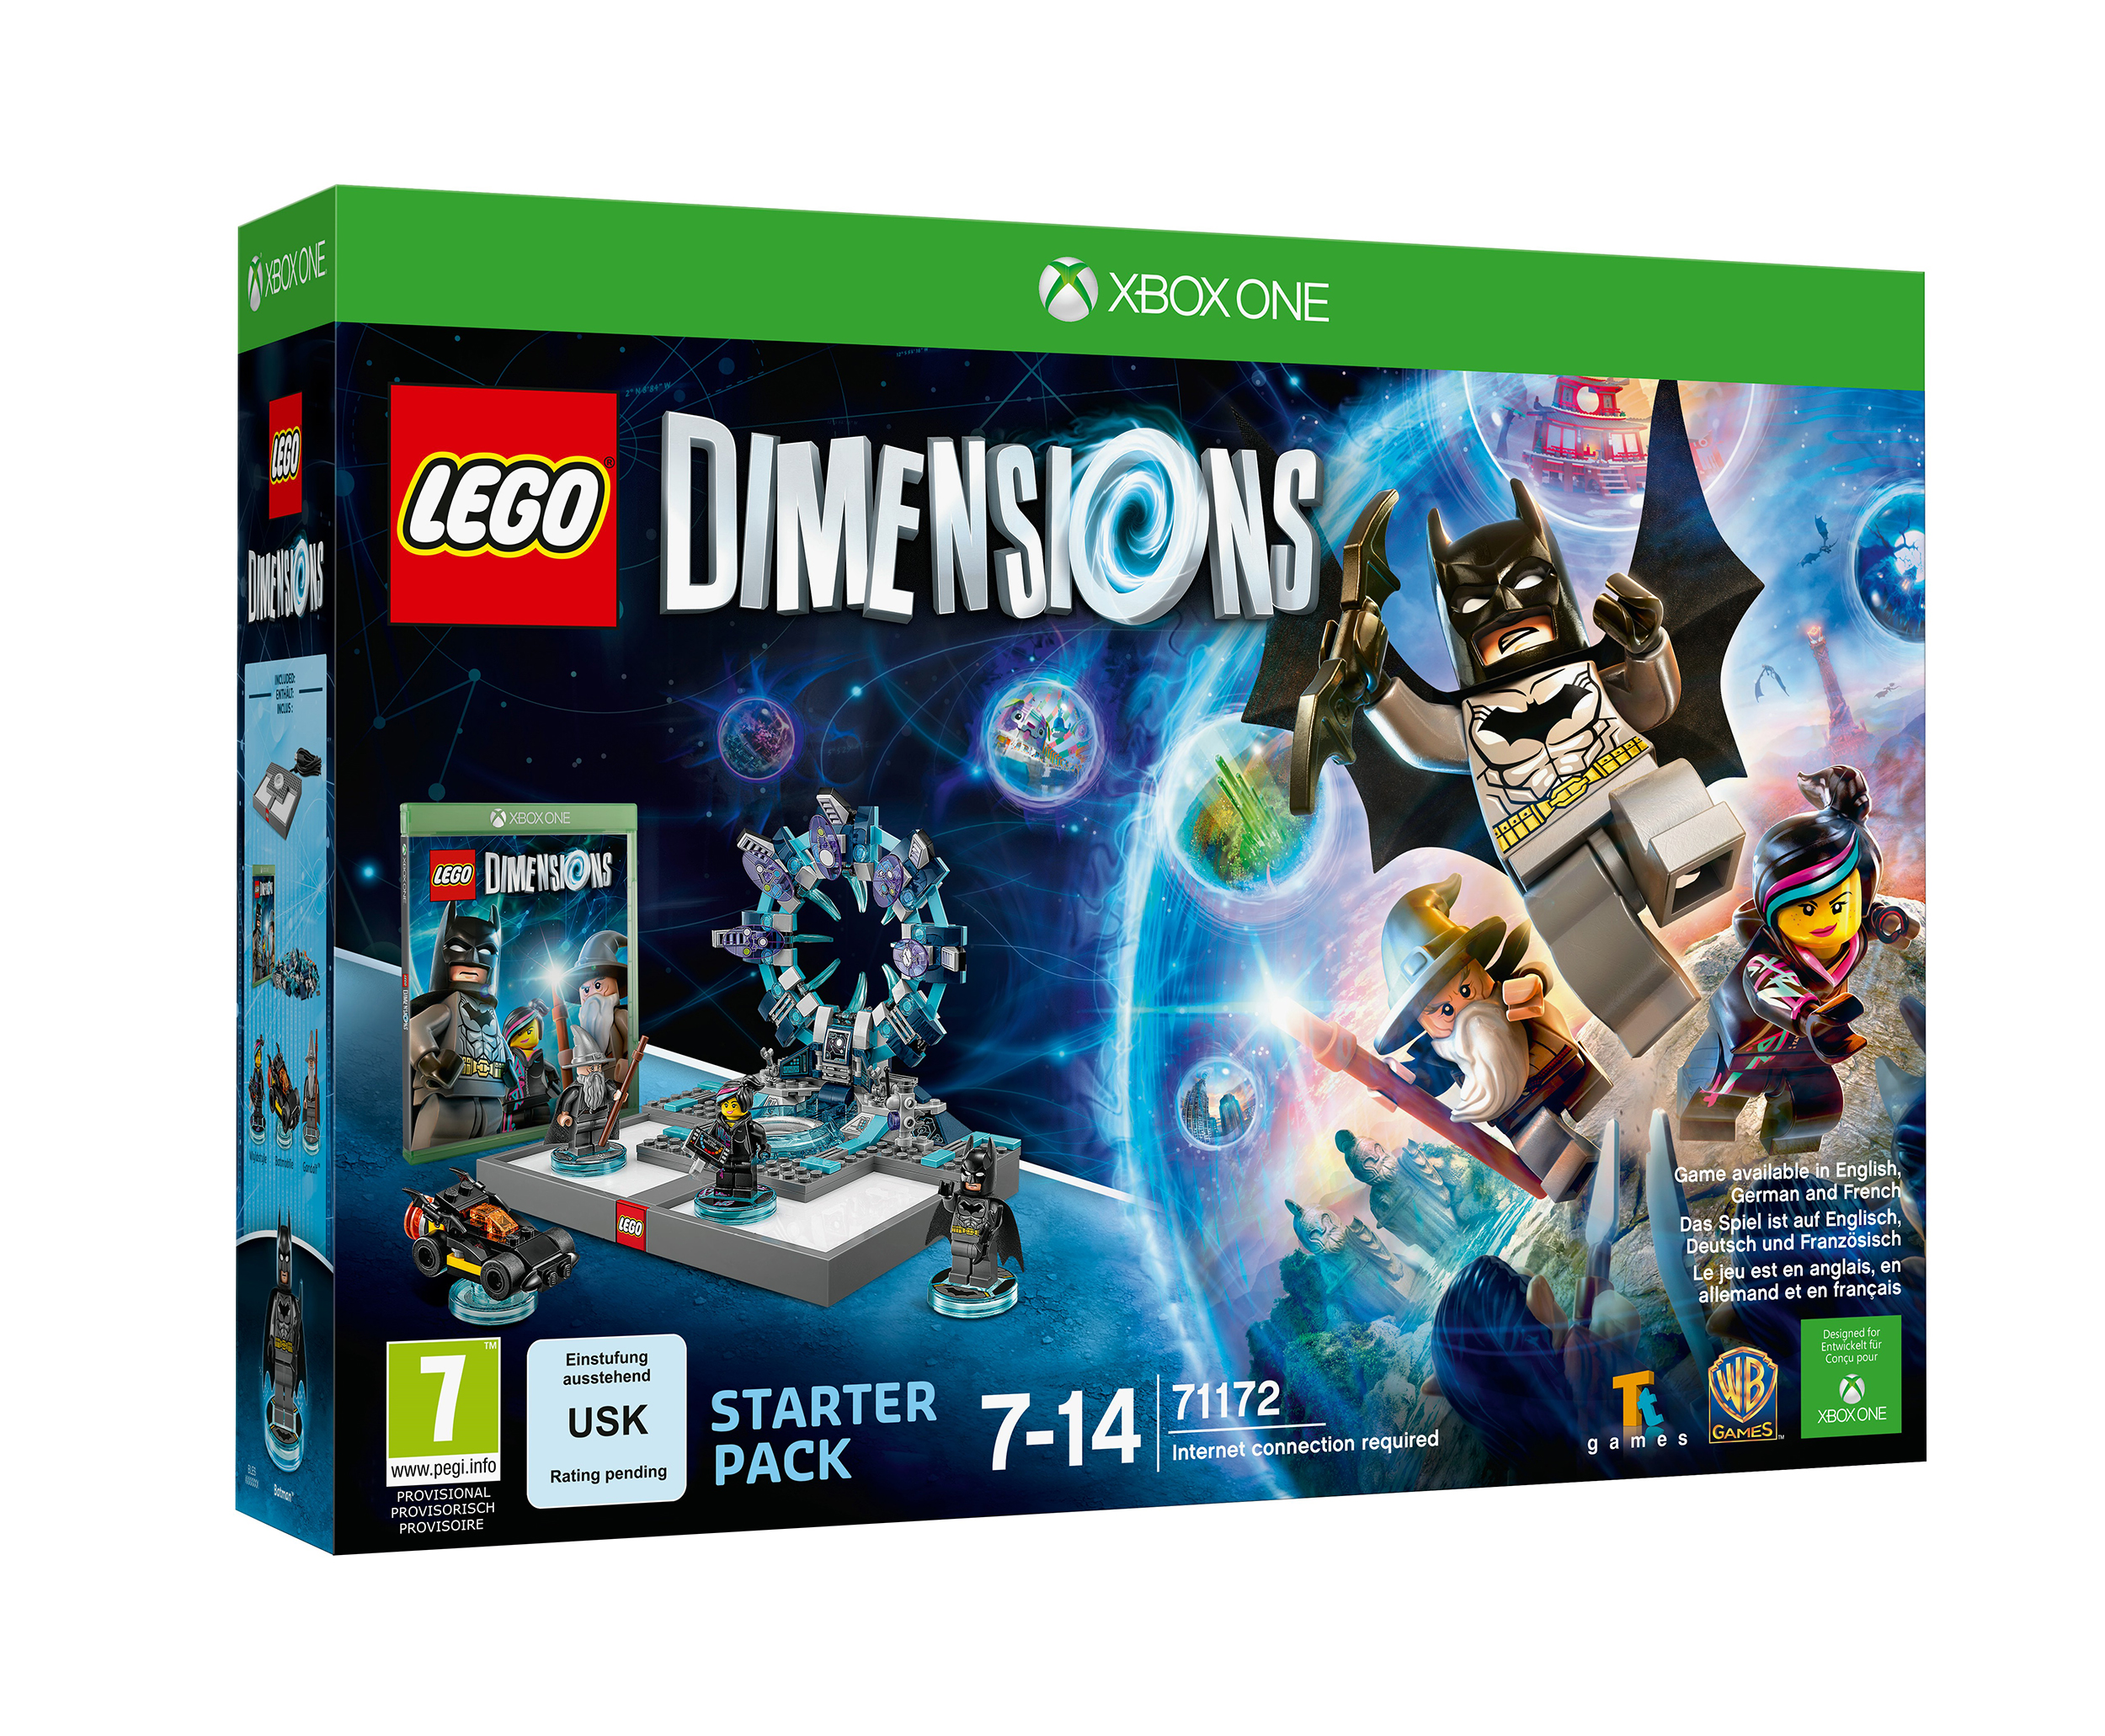 lego dimensions xbox one boxart. Black Bedroom Furniture Sets. Home Design Ideas